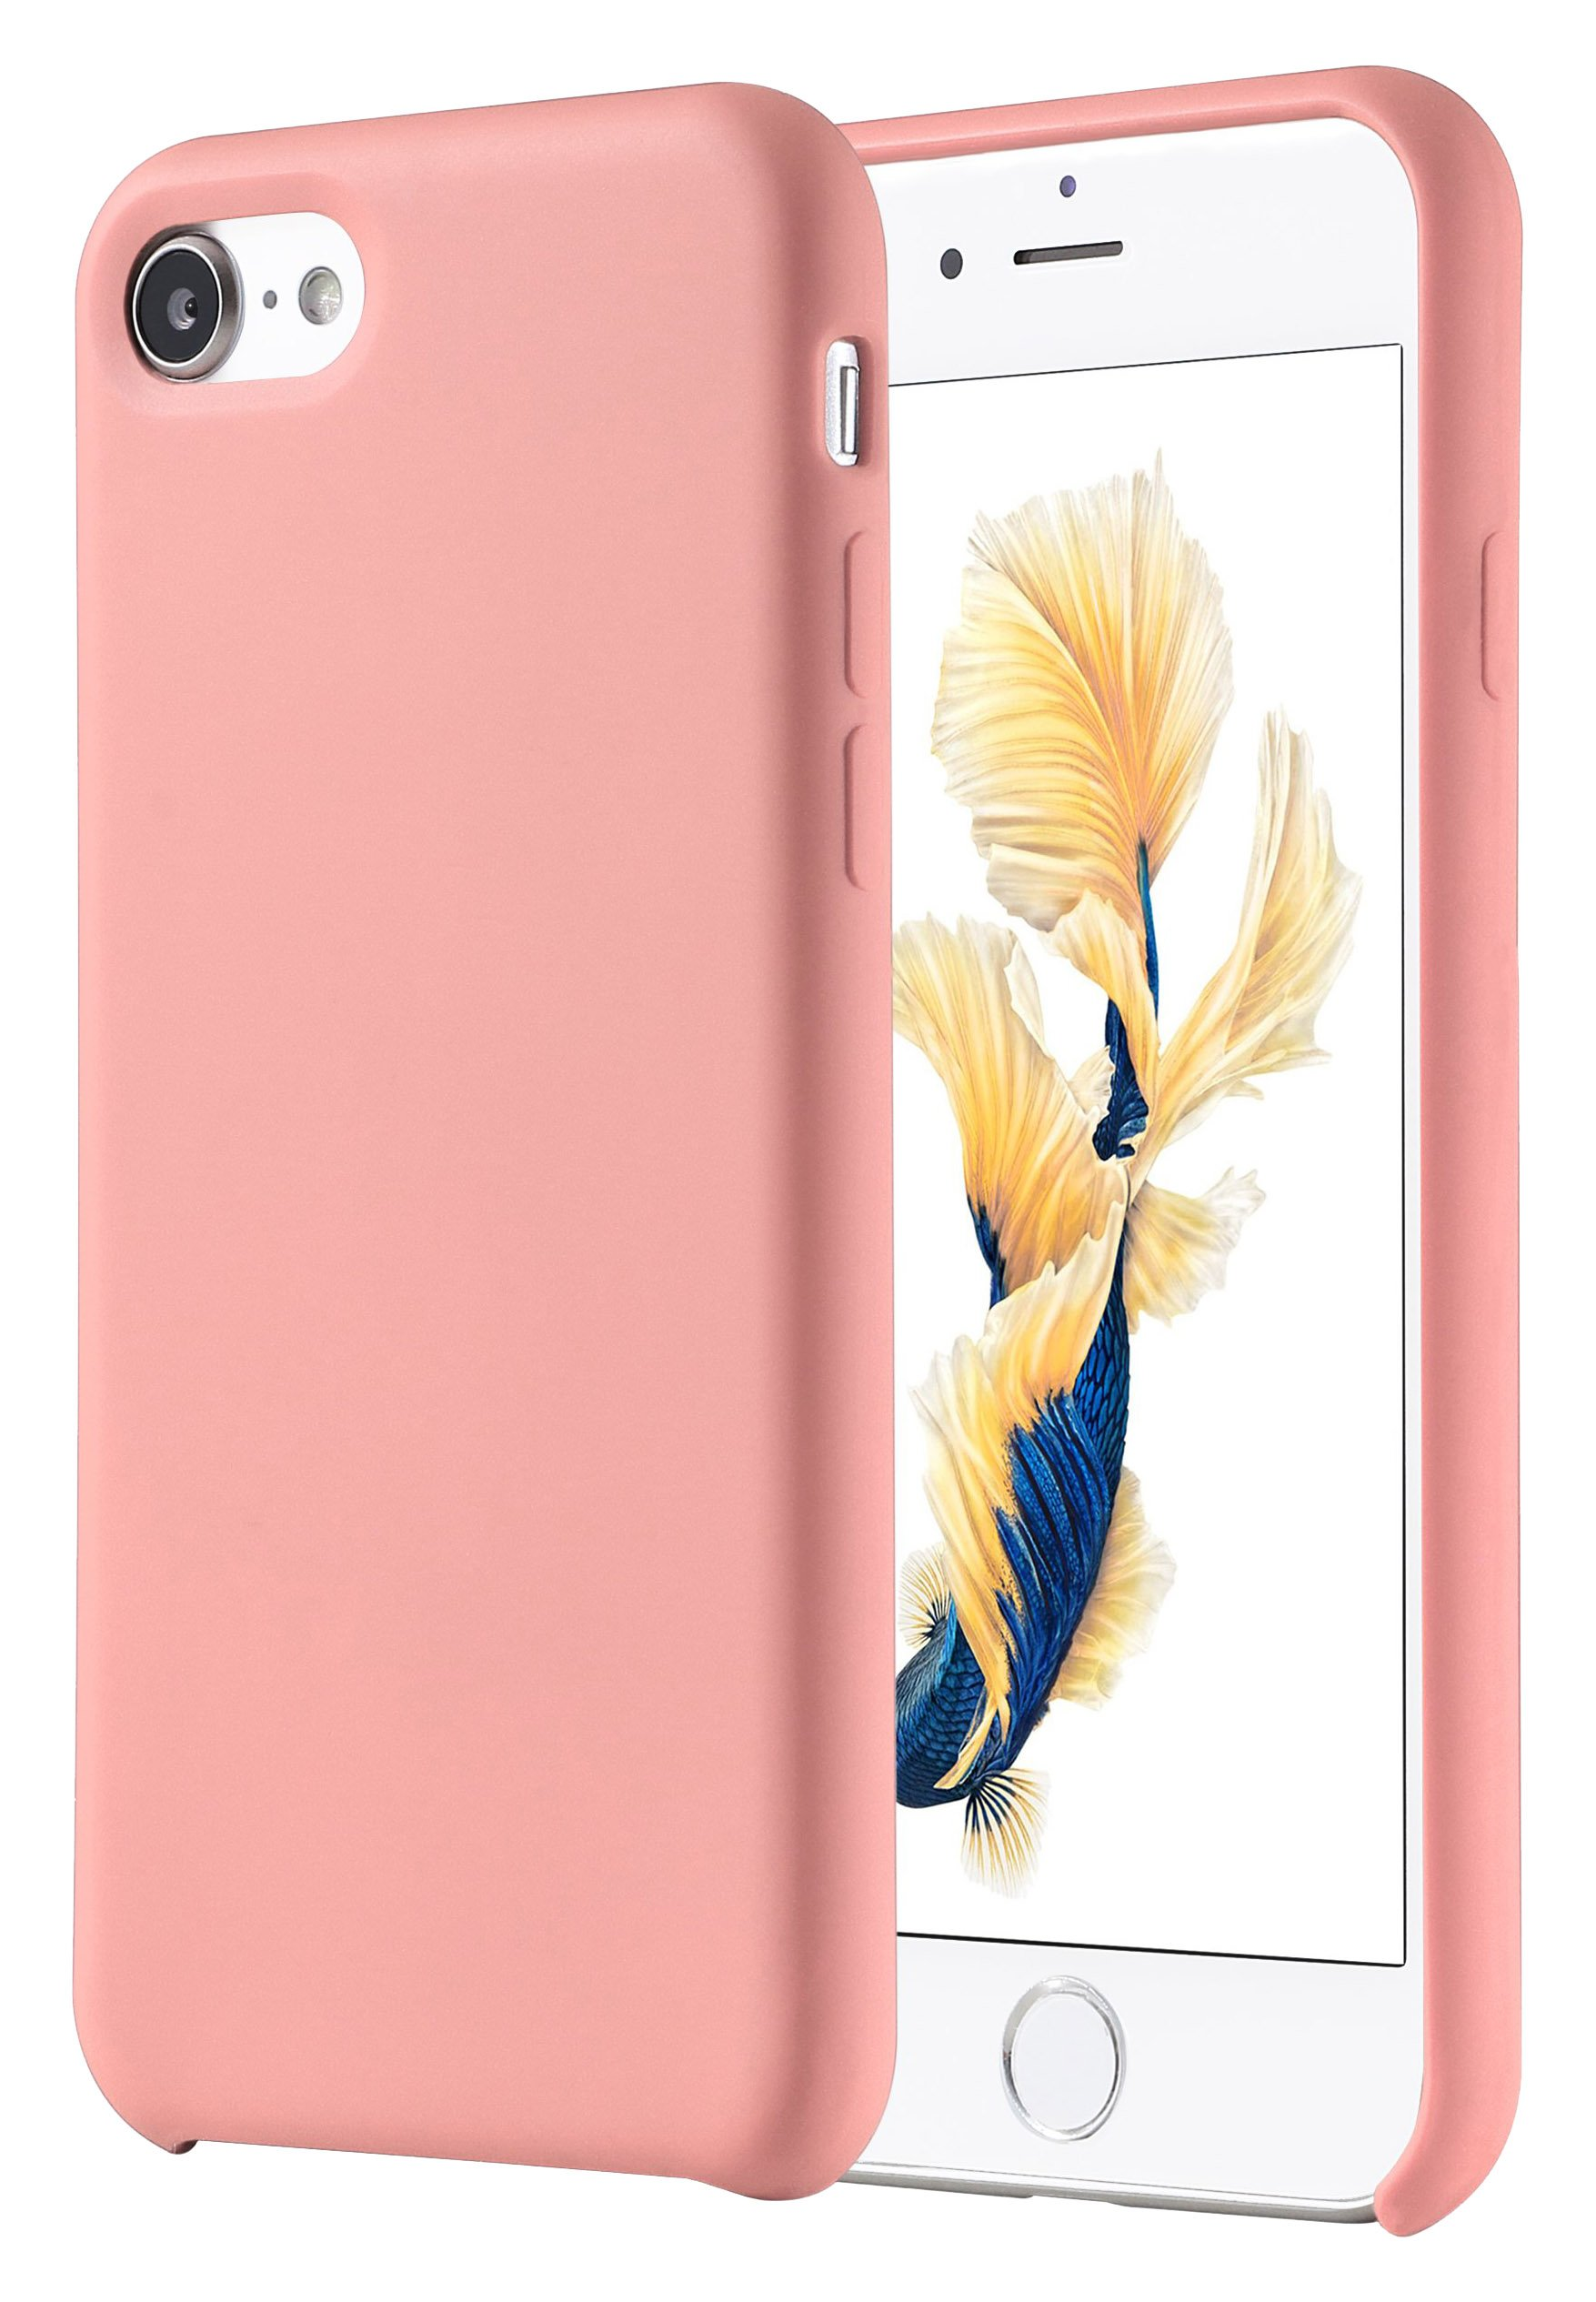 iPhone 7 Case, iPhone 8 Case, VIPFAN Liquid Silicone Gel Rubber Protective Shockproof Scratch-Resistant 4.7 Inch Cover with Soft Microfiber Cloth Lining Cushion(PINK)